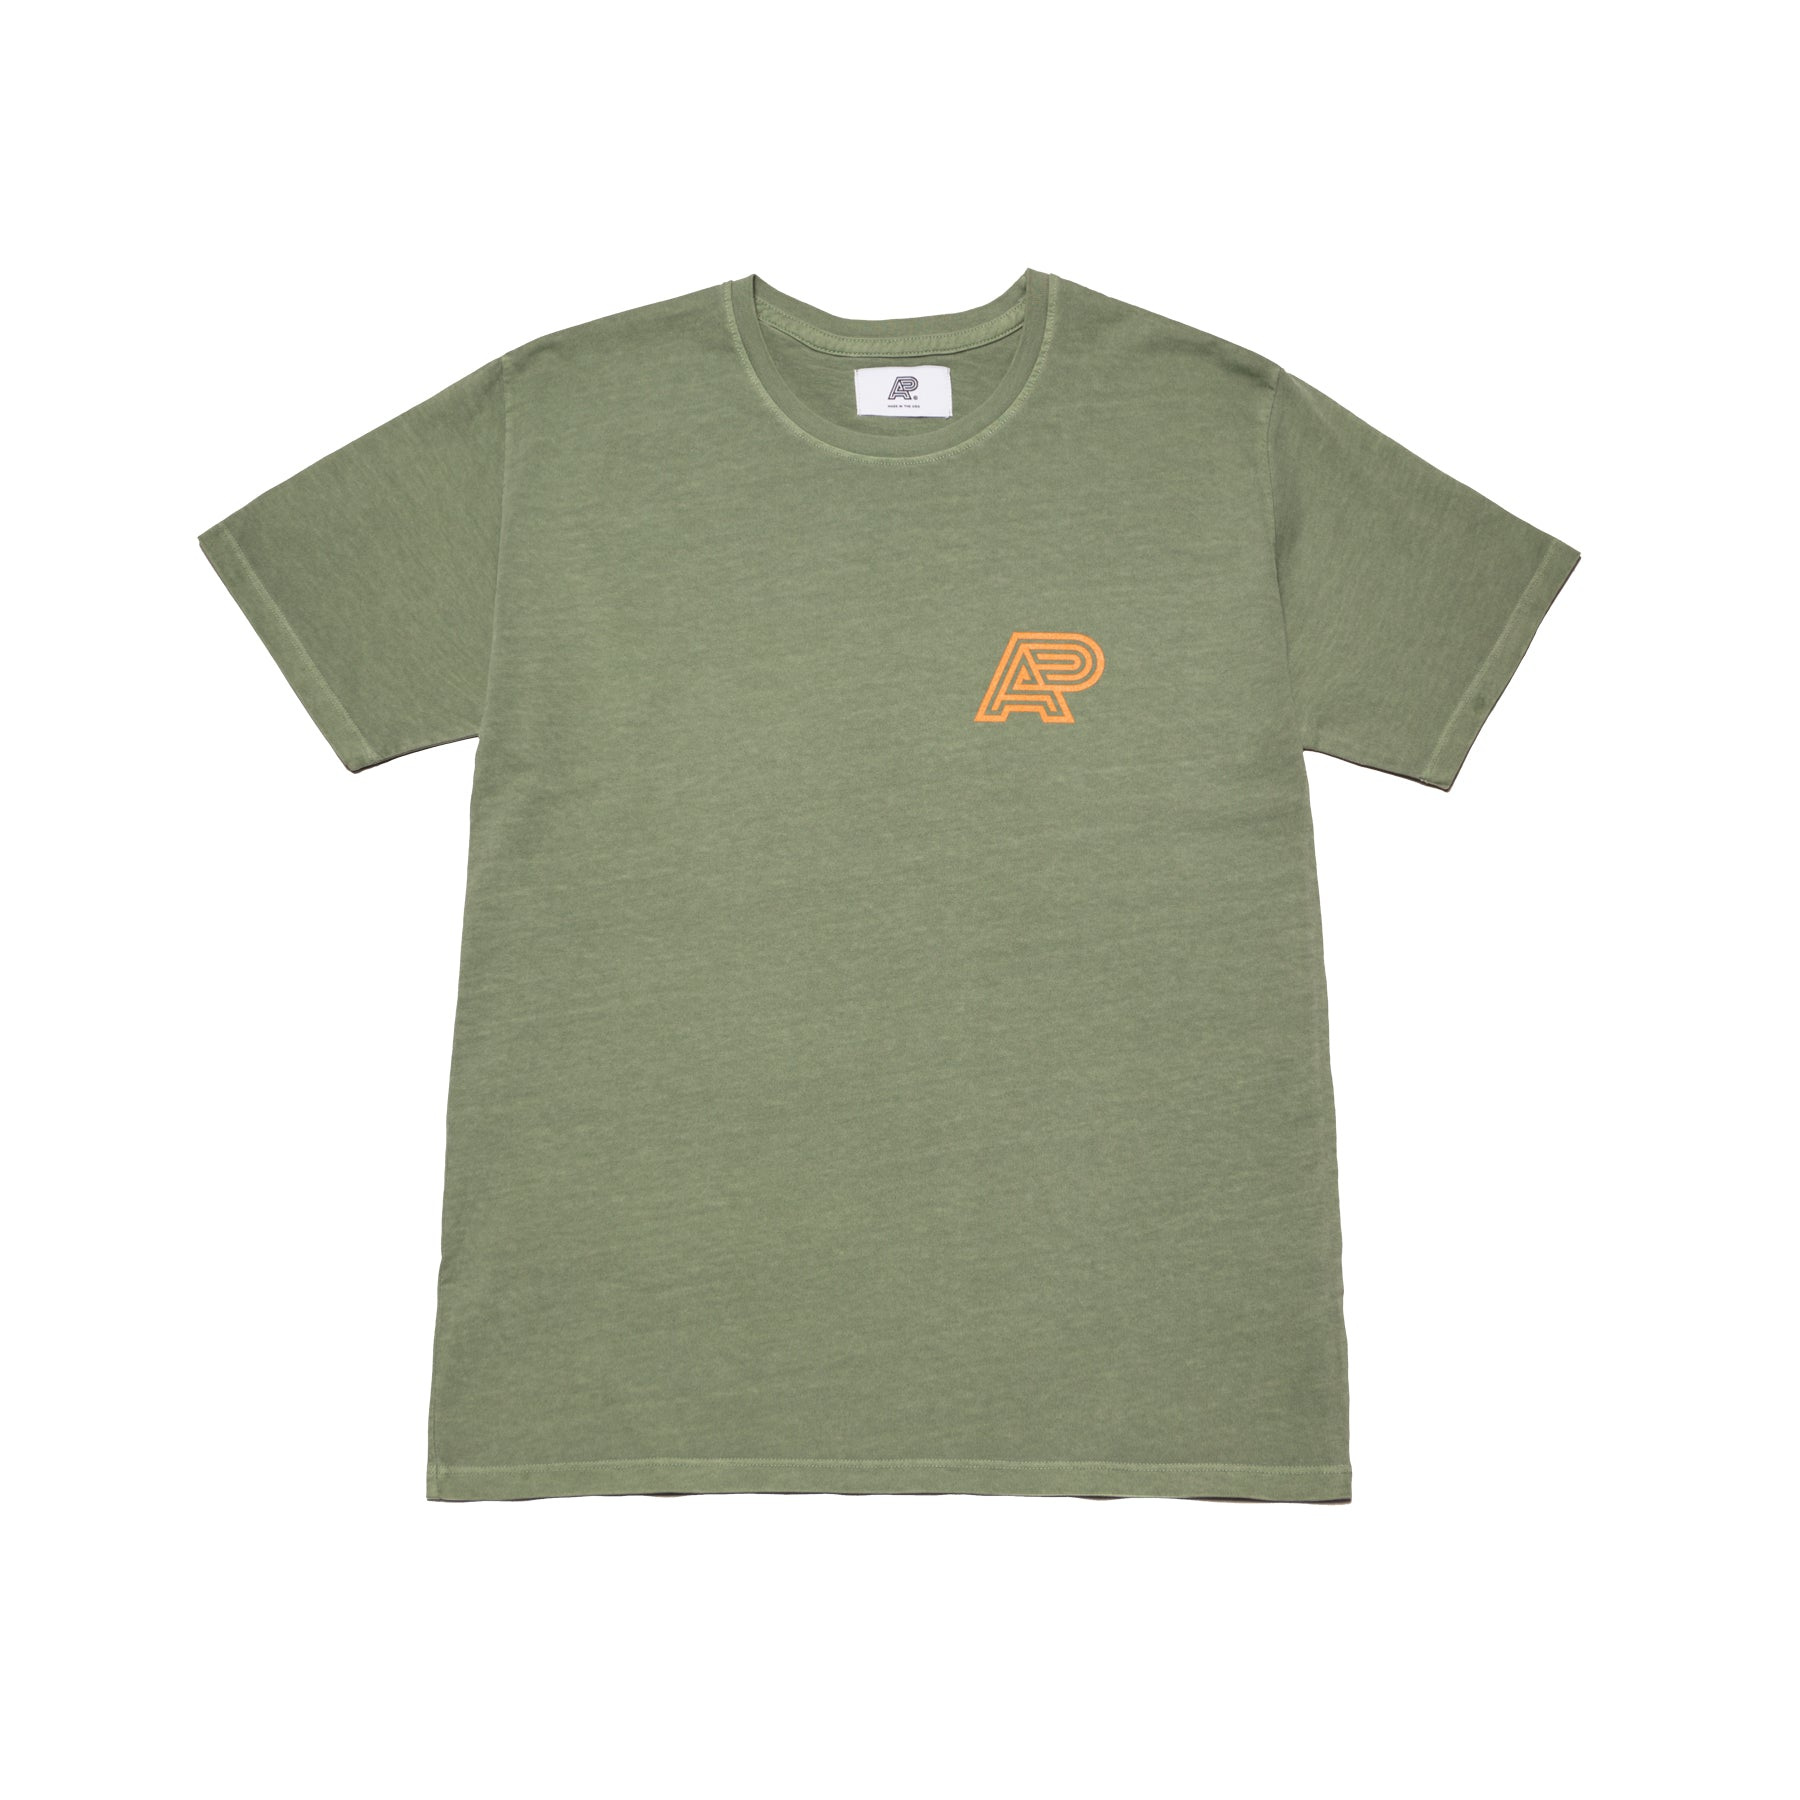 A&P VERDIAN GREEN PIGMENT DYED TEE